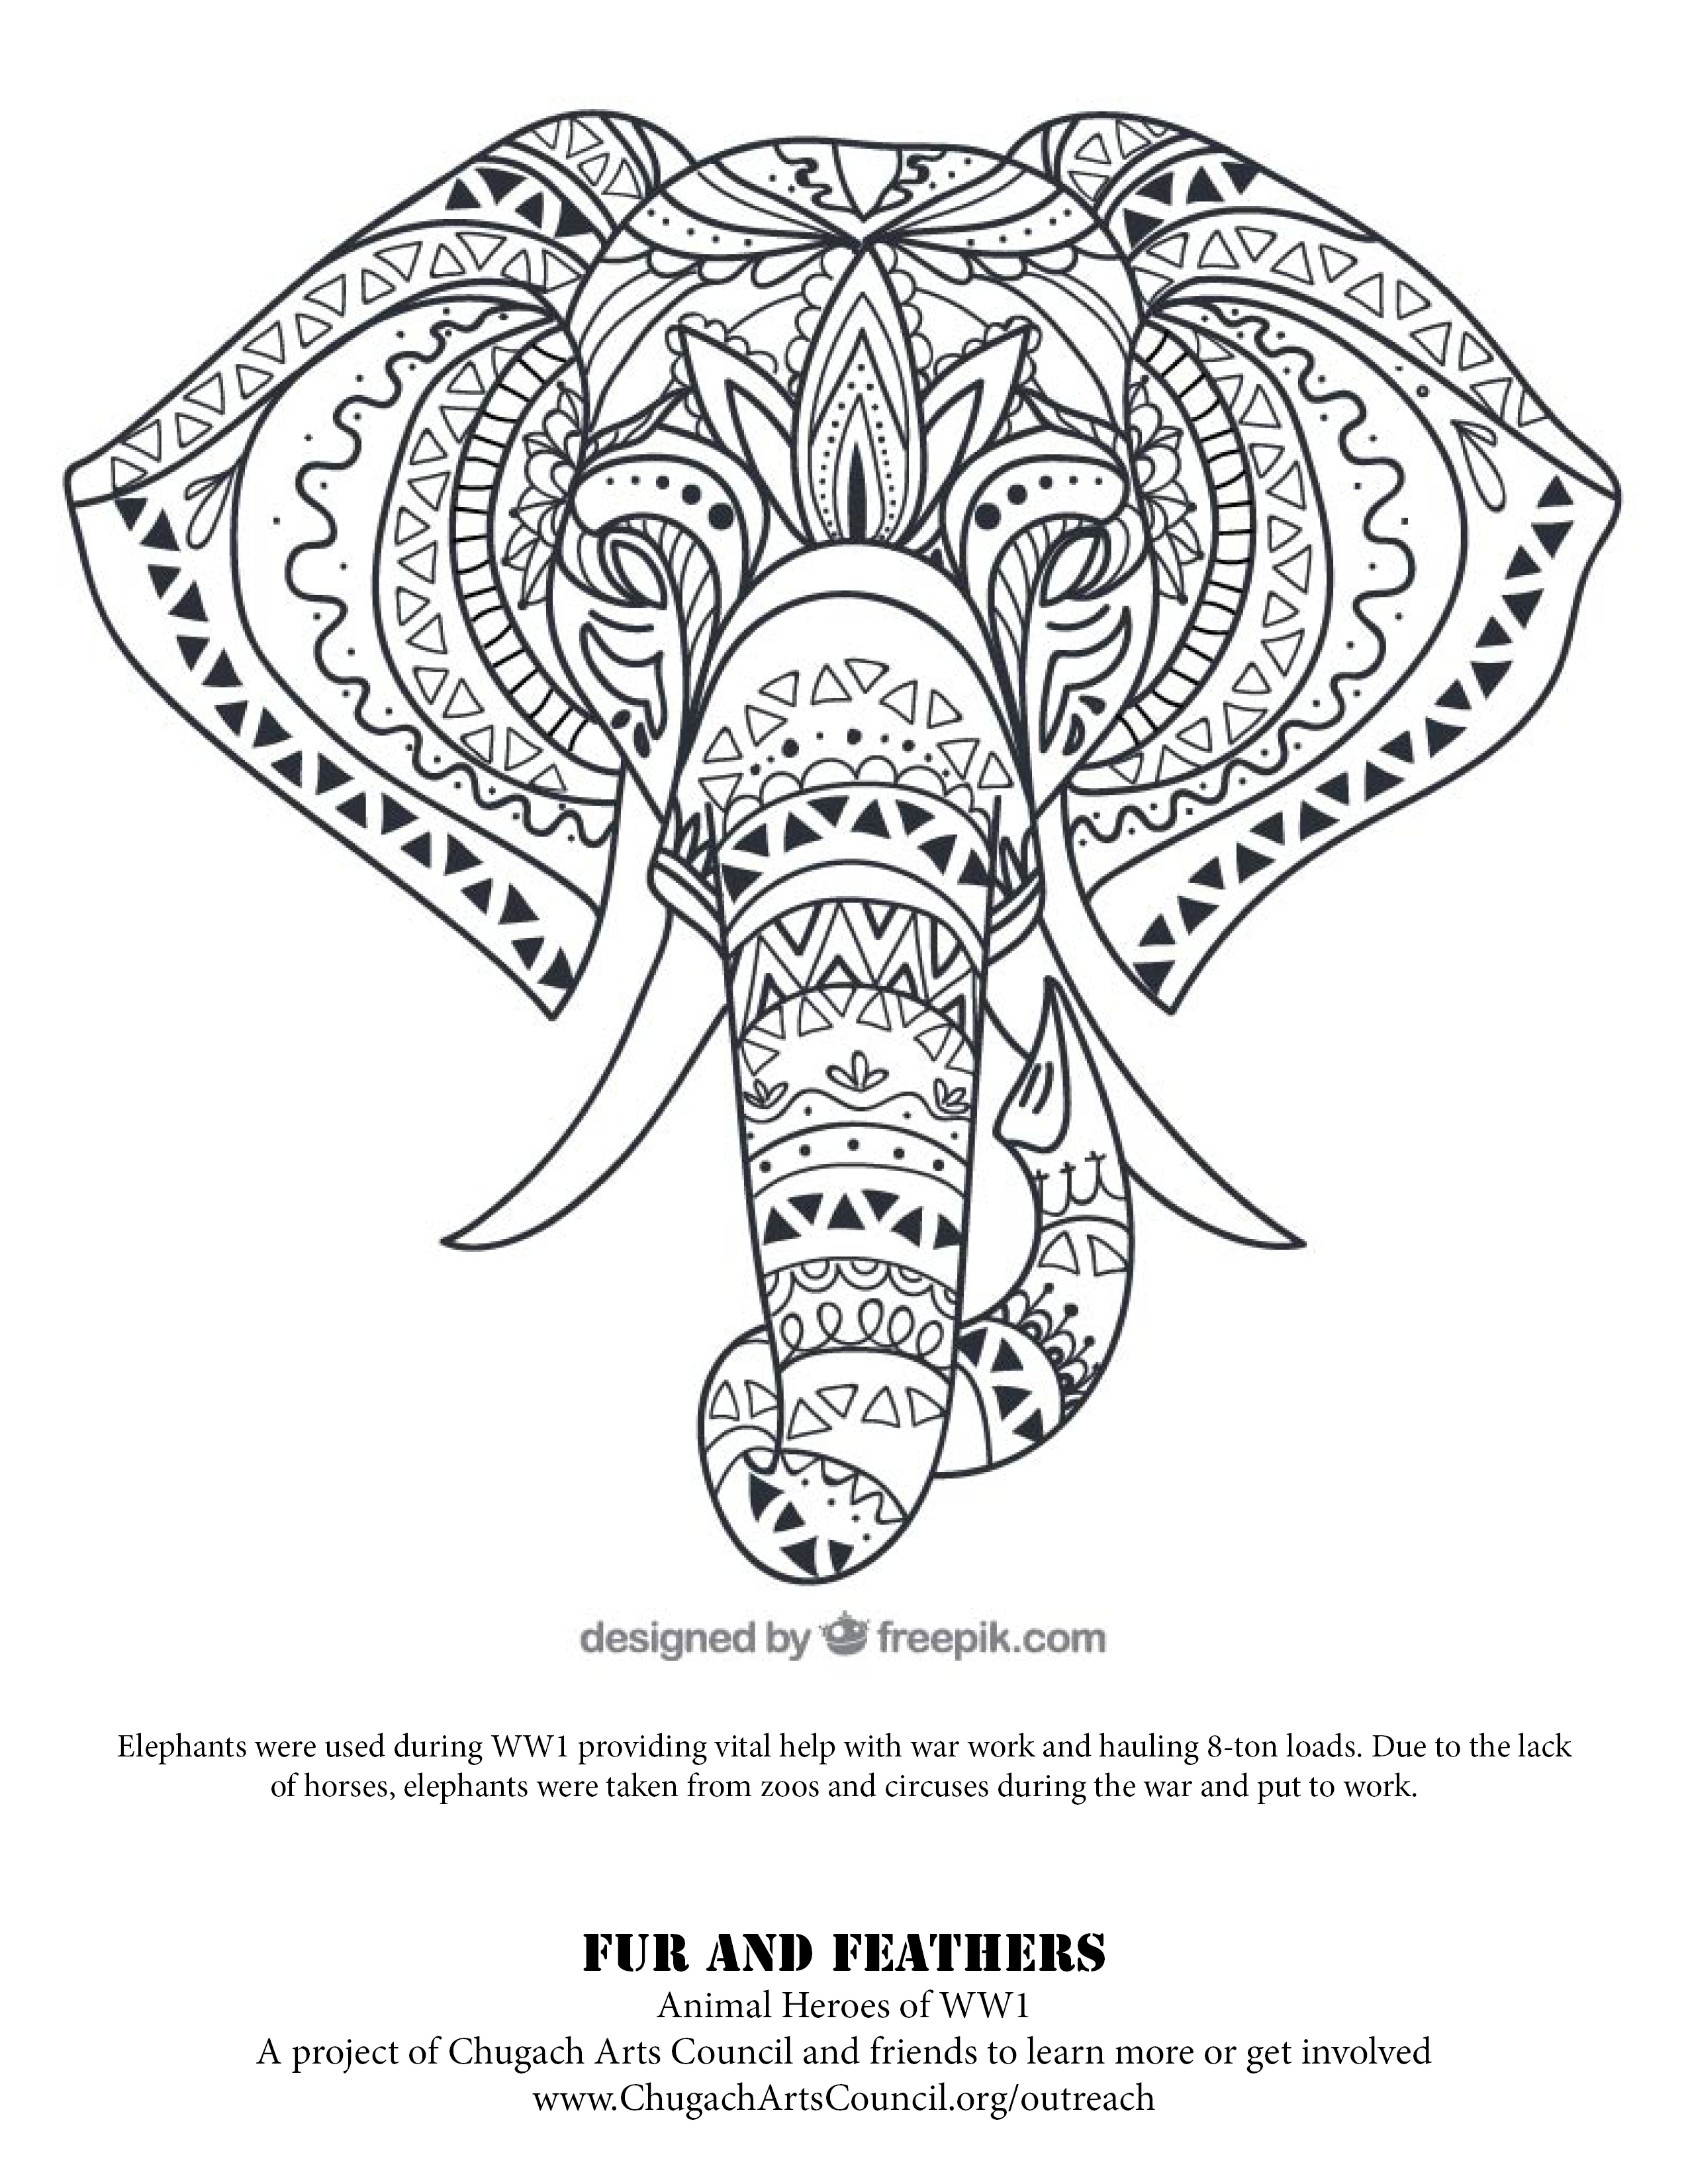 Coloring Pages Fur and Feathers